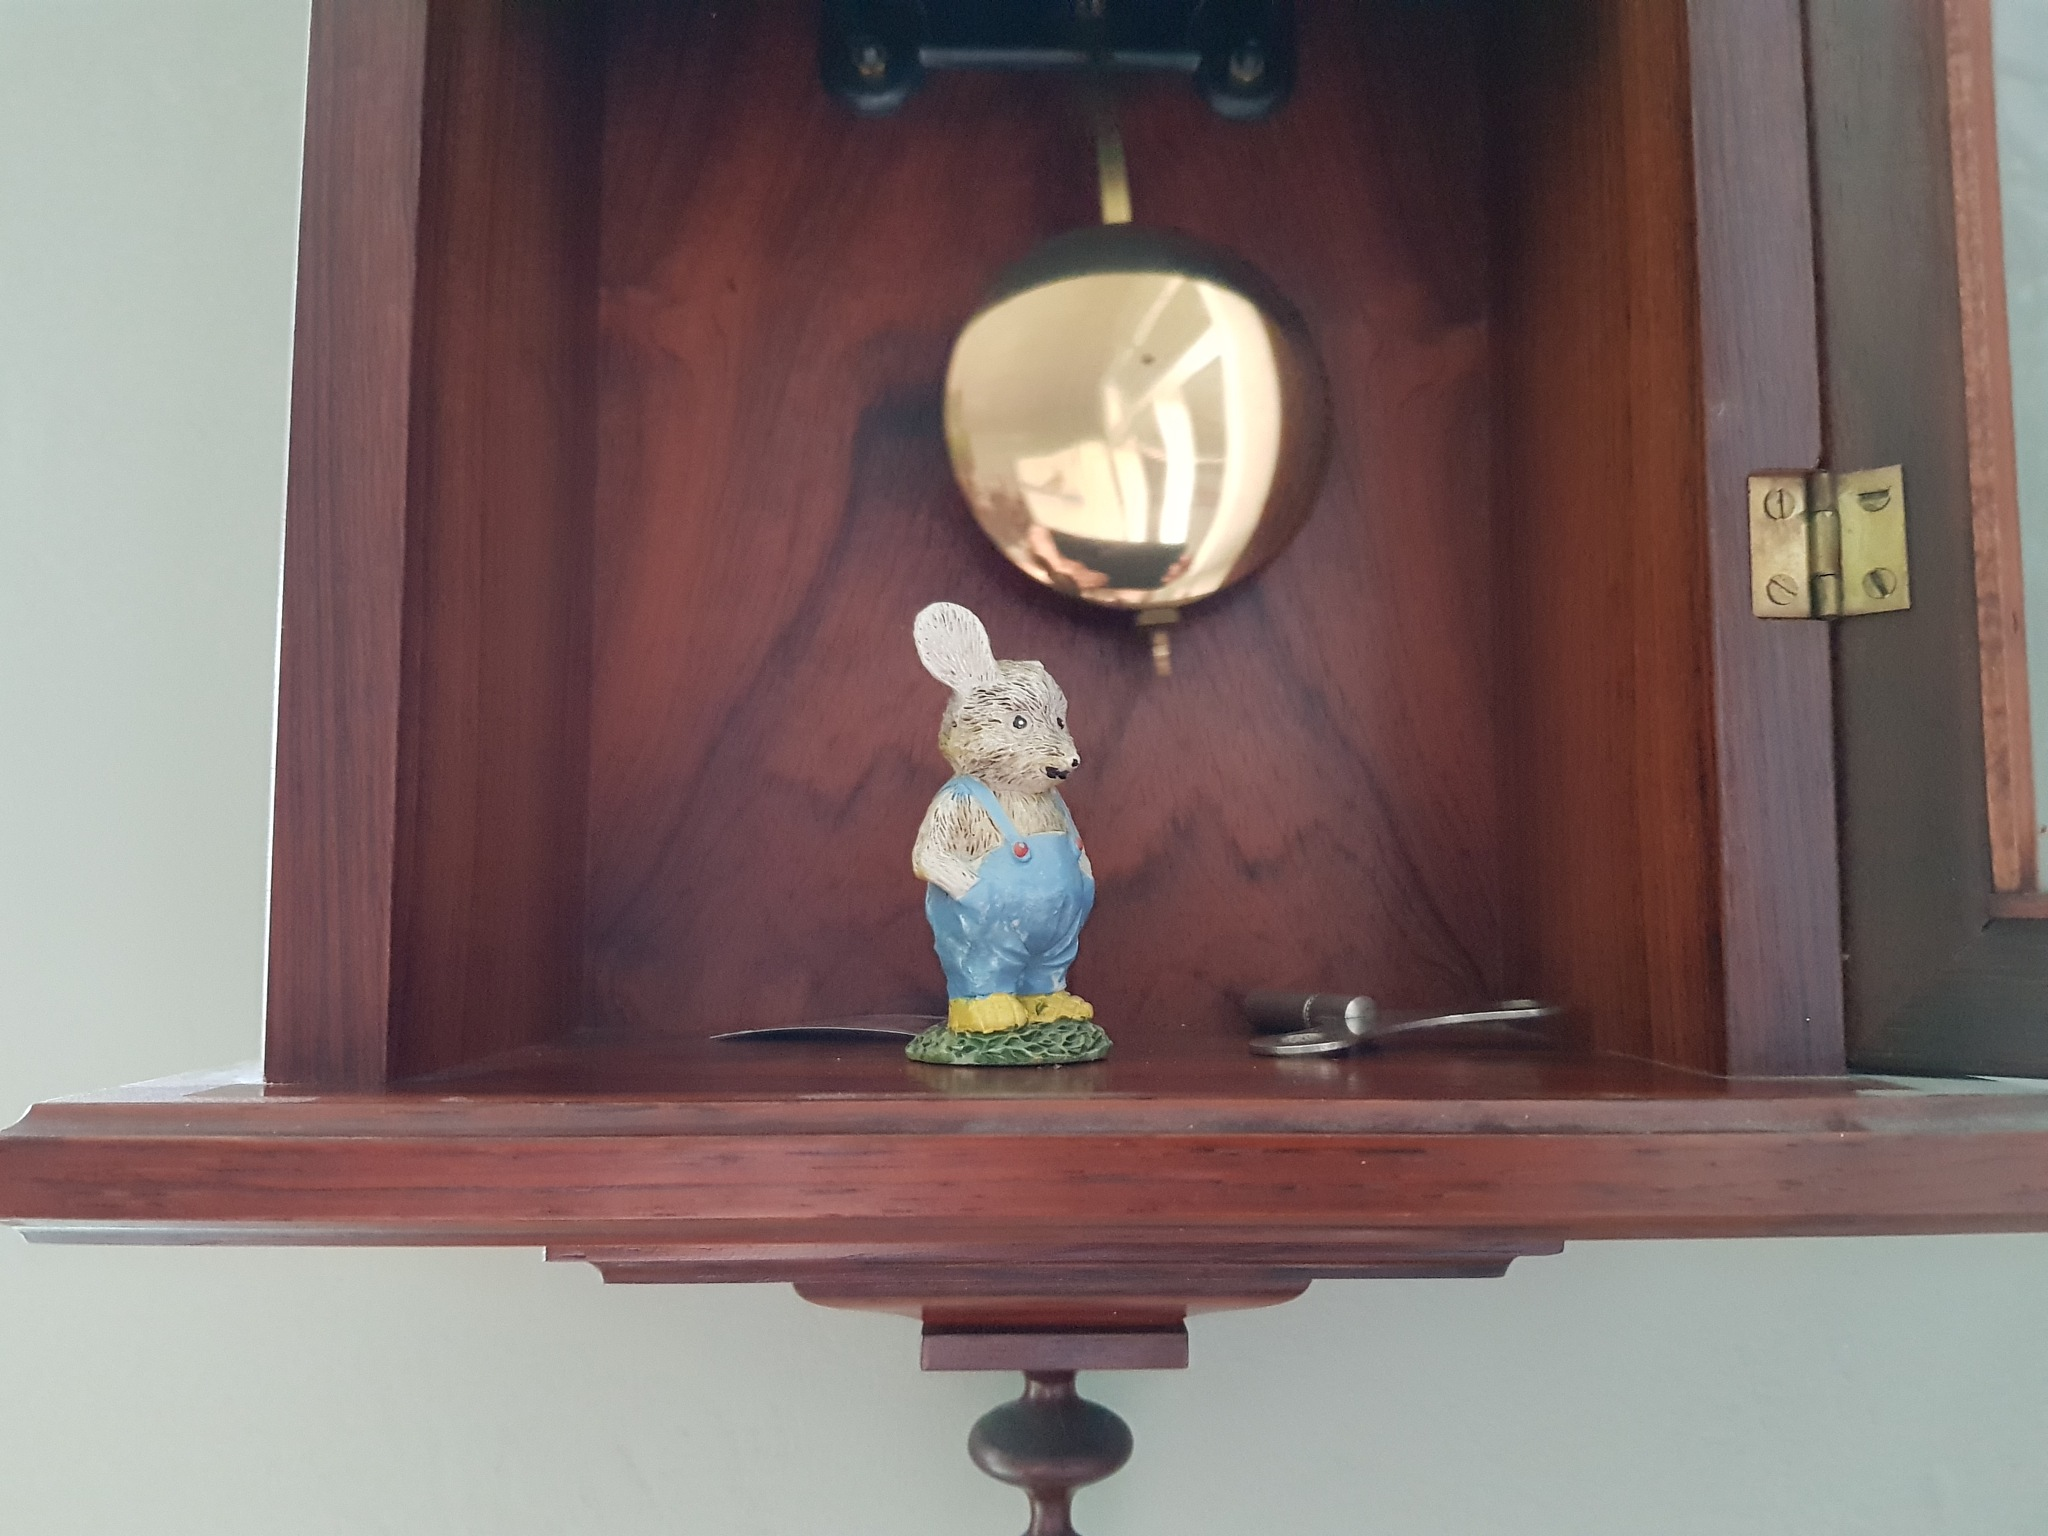 A Mouse in the clock by Justmetoo